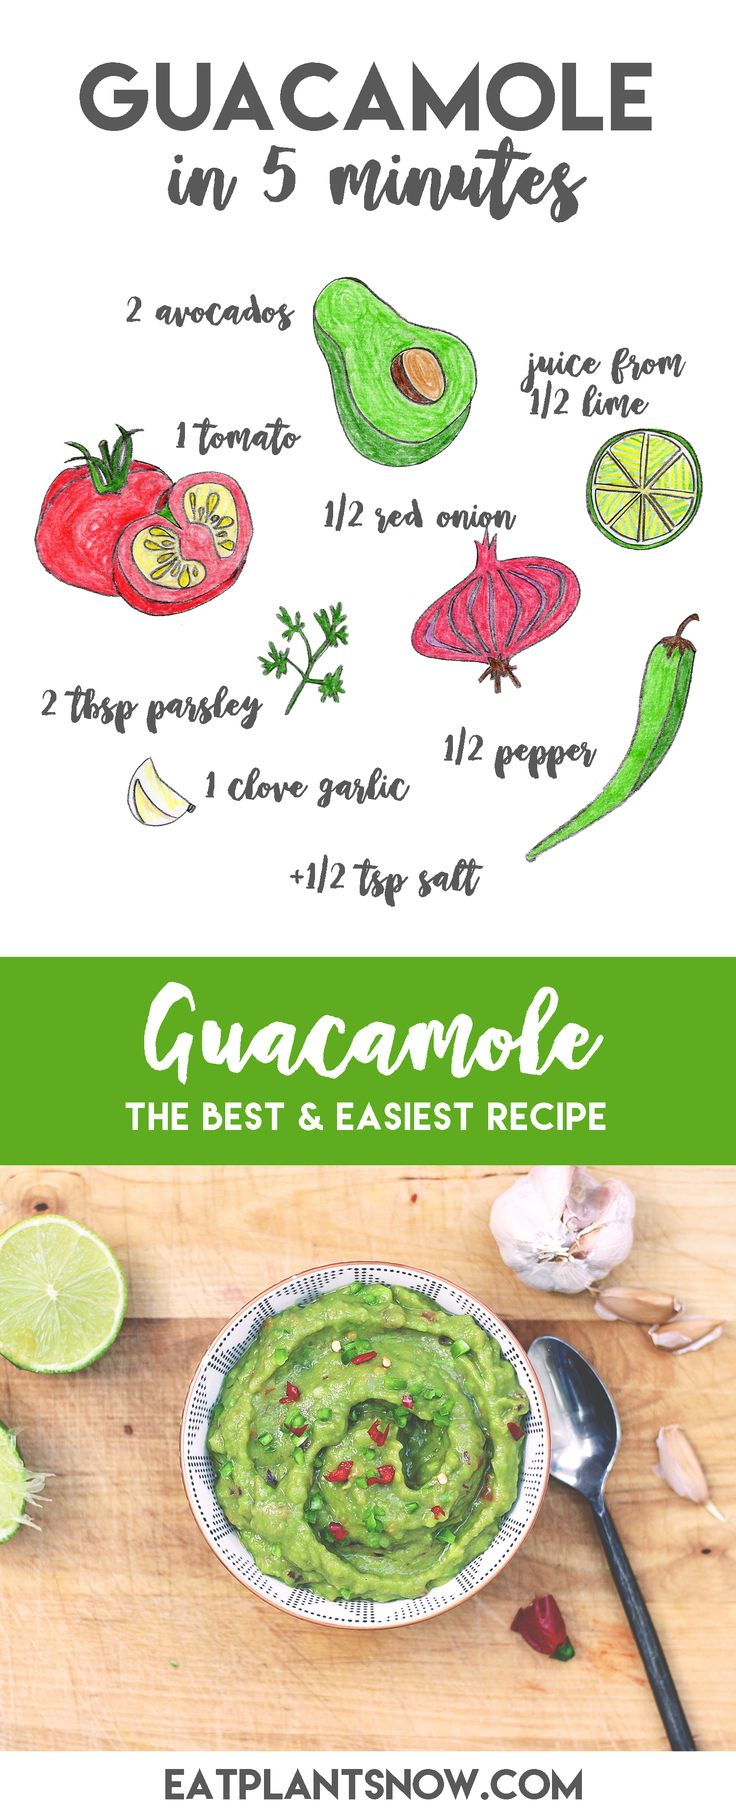 Guacamole Recipe - the Ultimate Plantbased Dip - Eat Plants Now